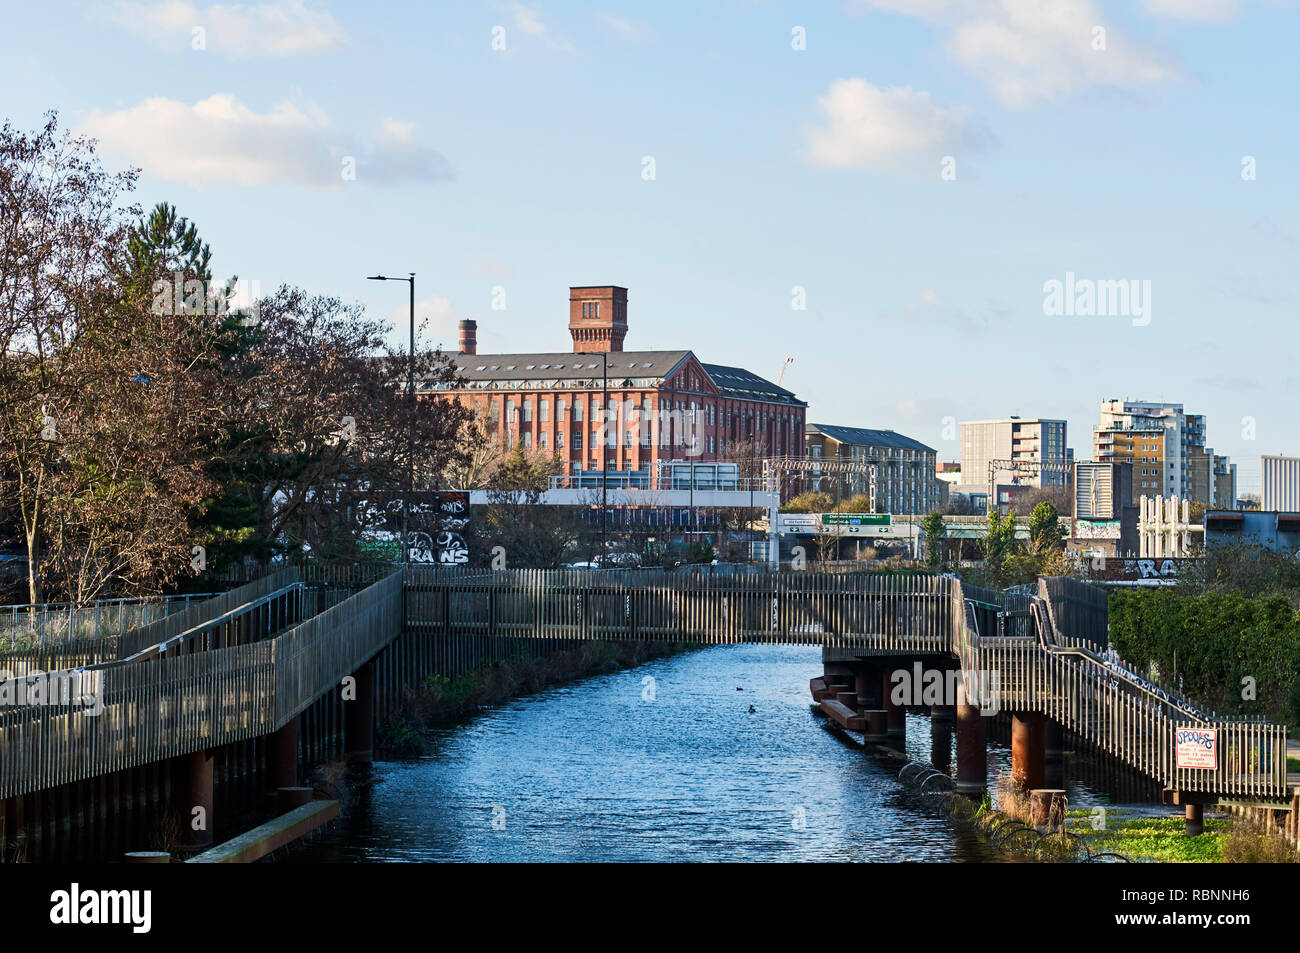 The River Lea and footbridge at Bow, East London UK, with the former Bryant & May match factory building in background - Stock Image